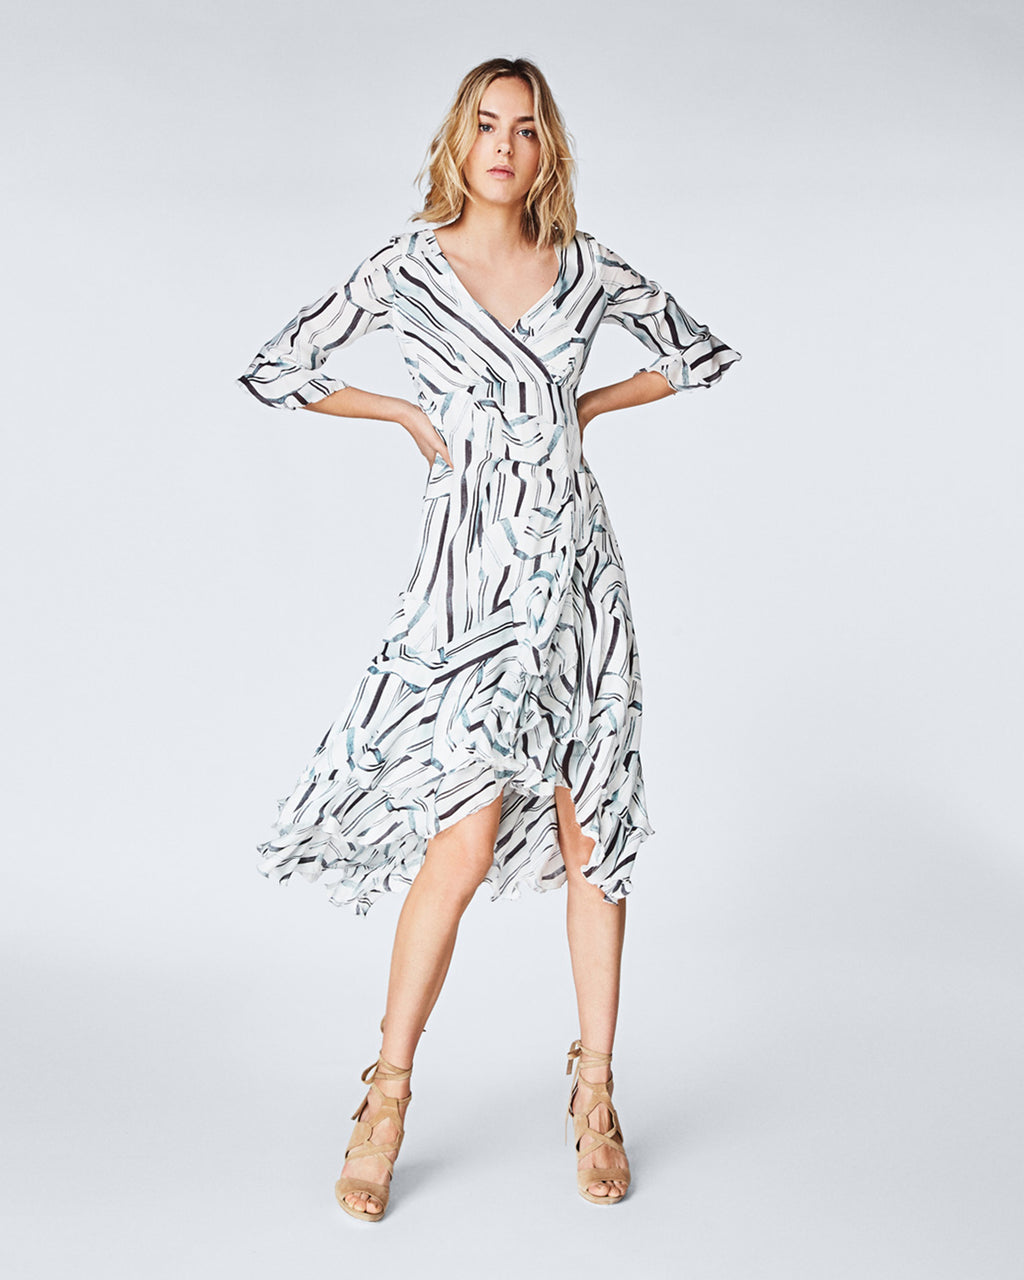 CC10176 - ruffle slit dress - dresses - short - A crisp white and contrasting blues, this silk dress is perfect for any summer occasion. With a faux wrap silhouette and flutter sleeves, this midi dress flows in to a ruffled high-low hem. Finished with a concealed zipper for closure and fully lined. Final Sale